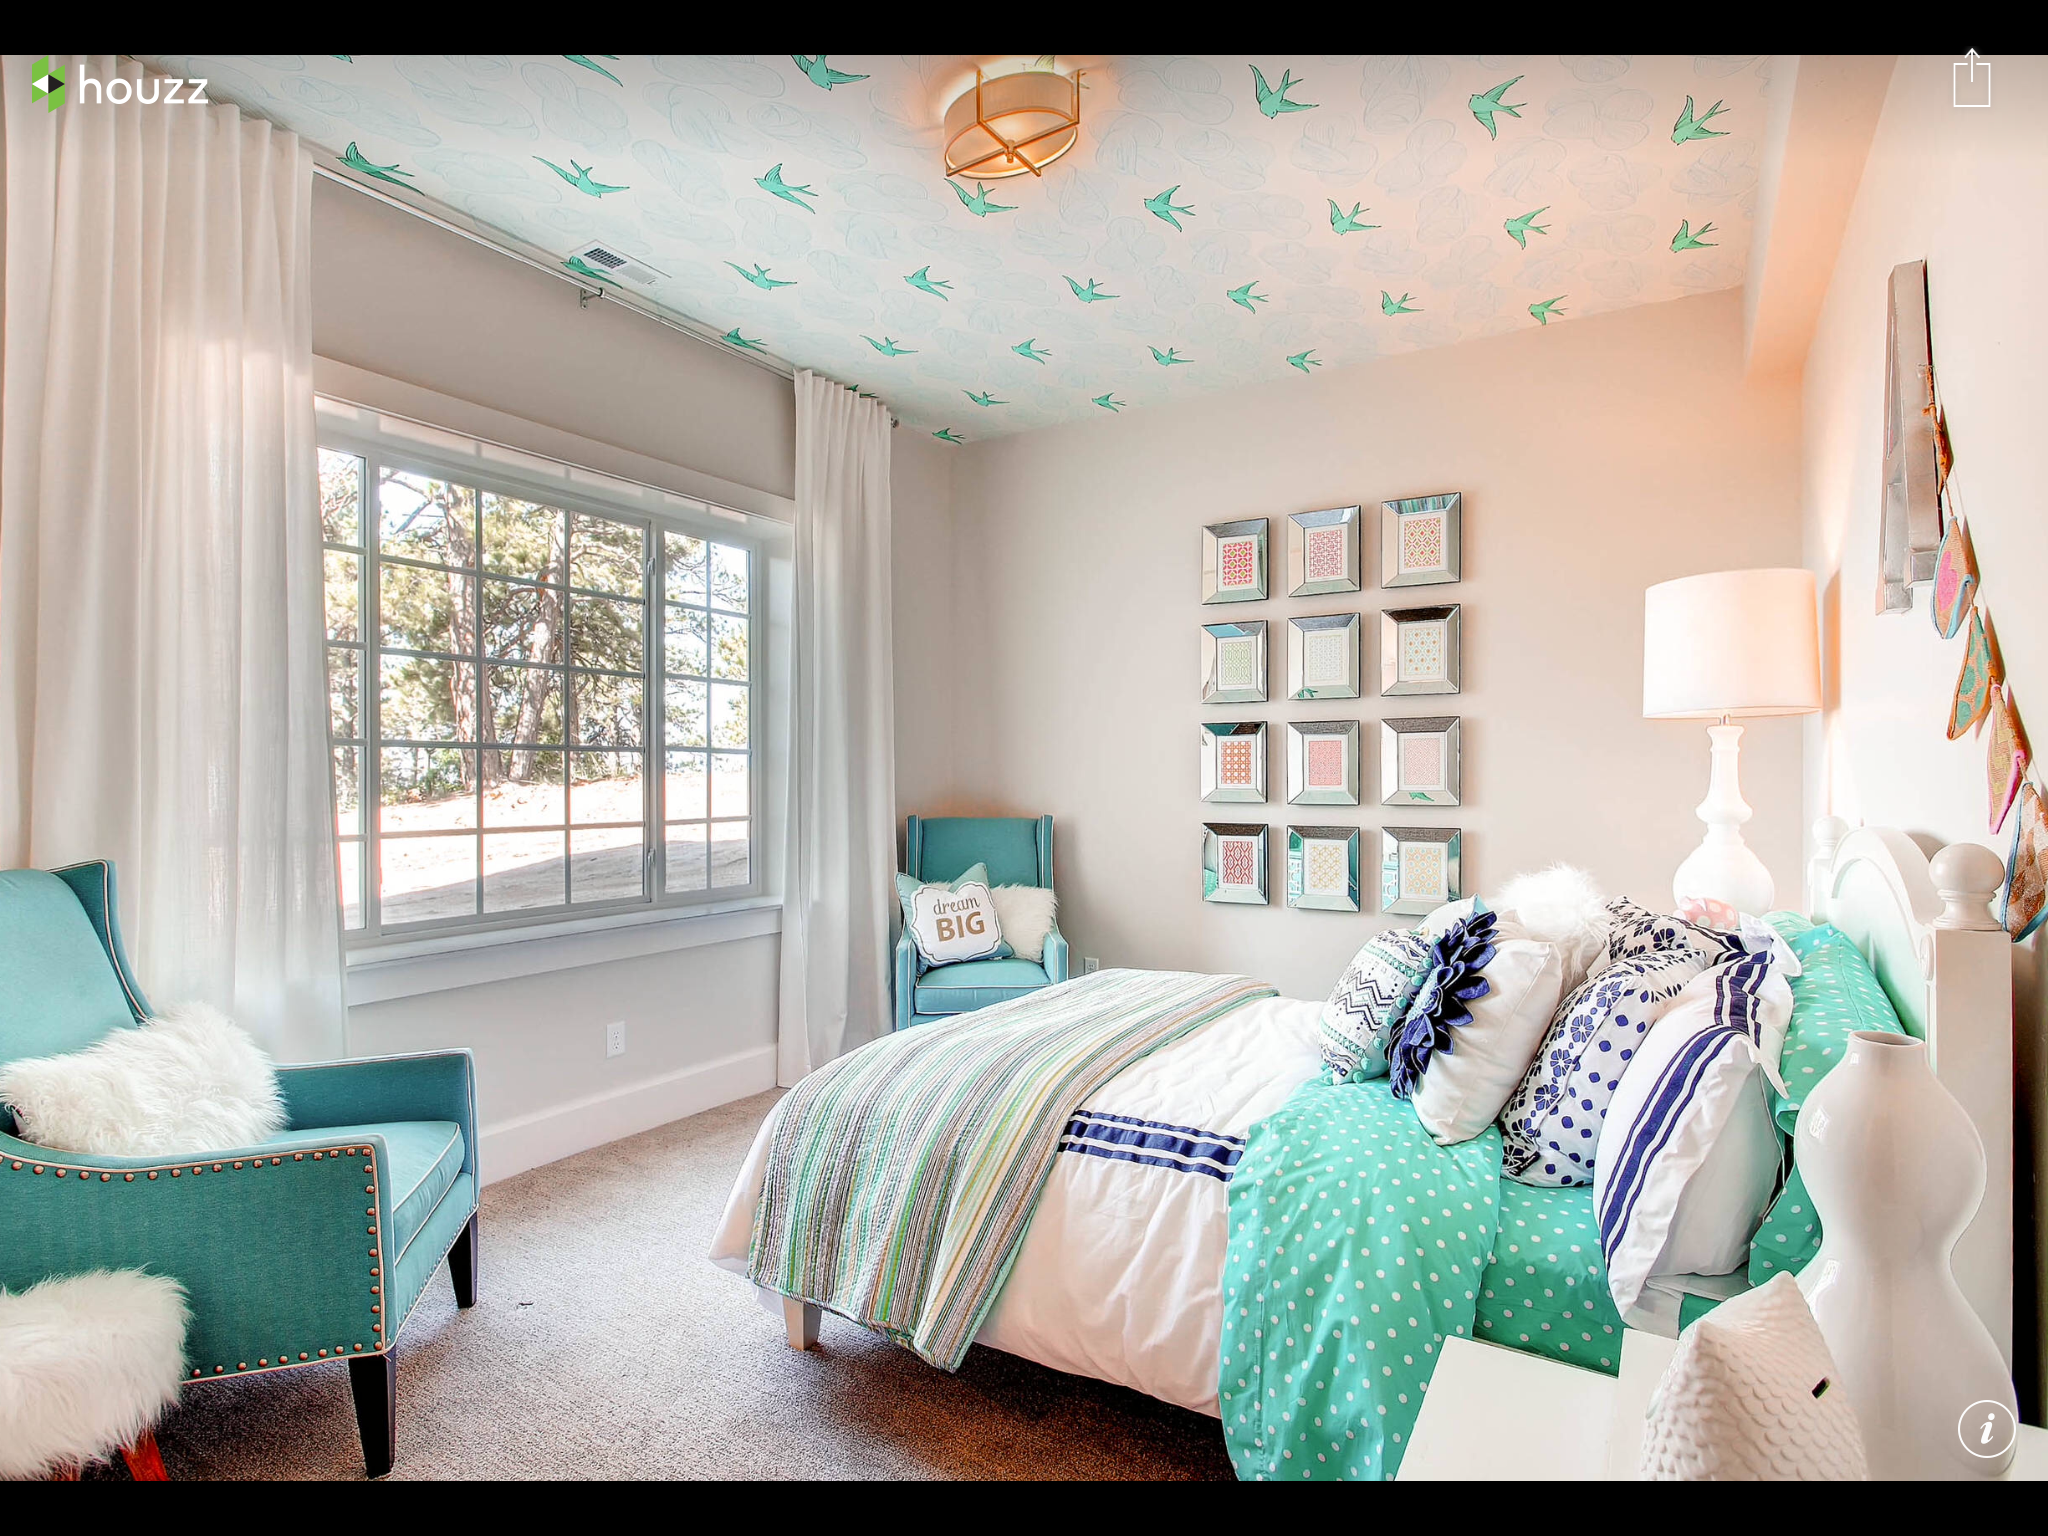 Discover cool teenage bedroom ideas for girls